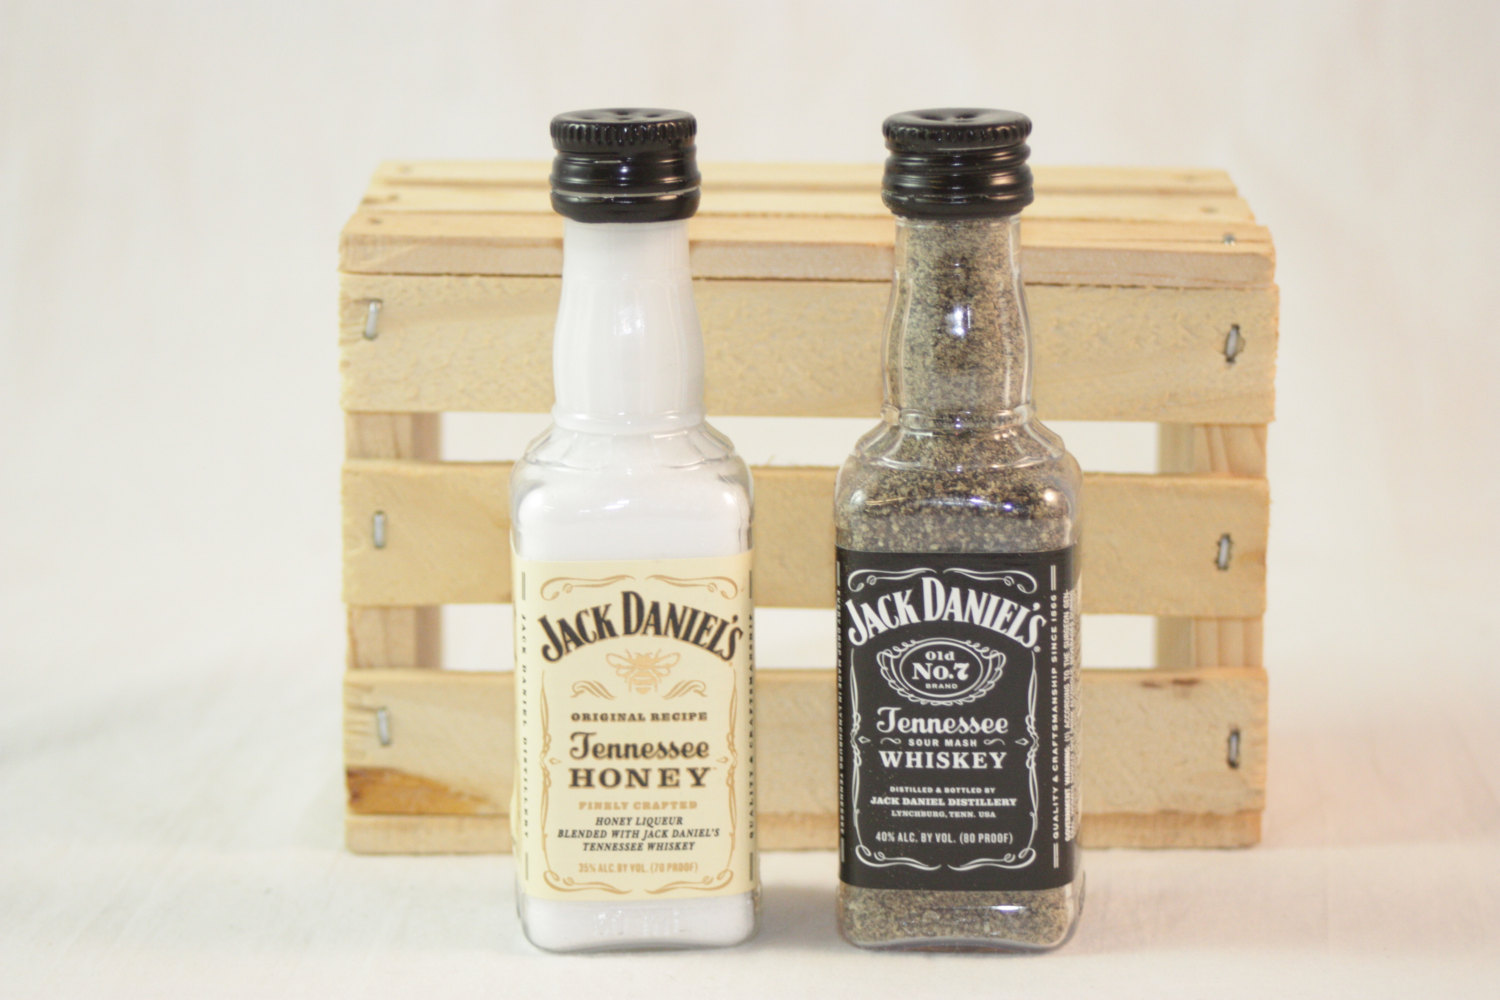 9 ways to repurpose your jack daniel's bottles, because showcasing